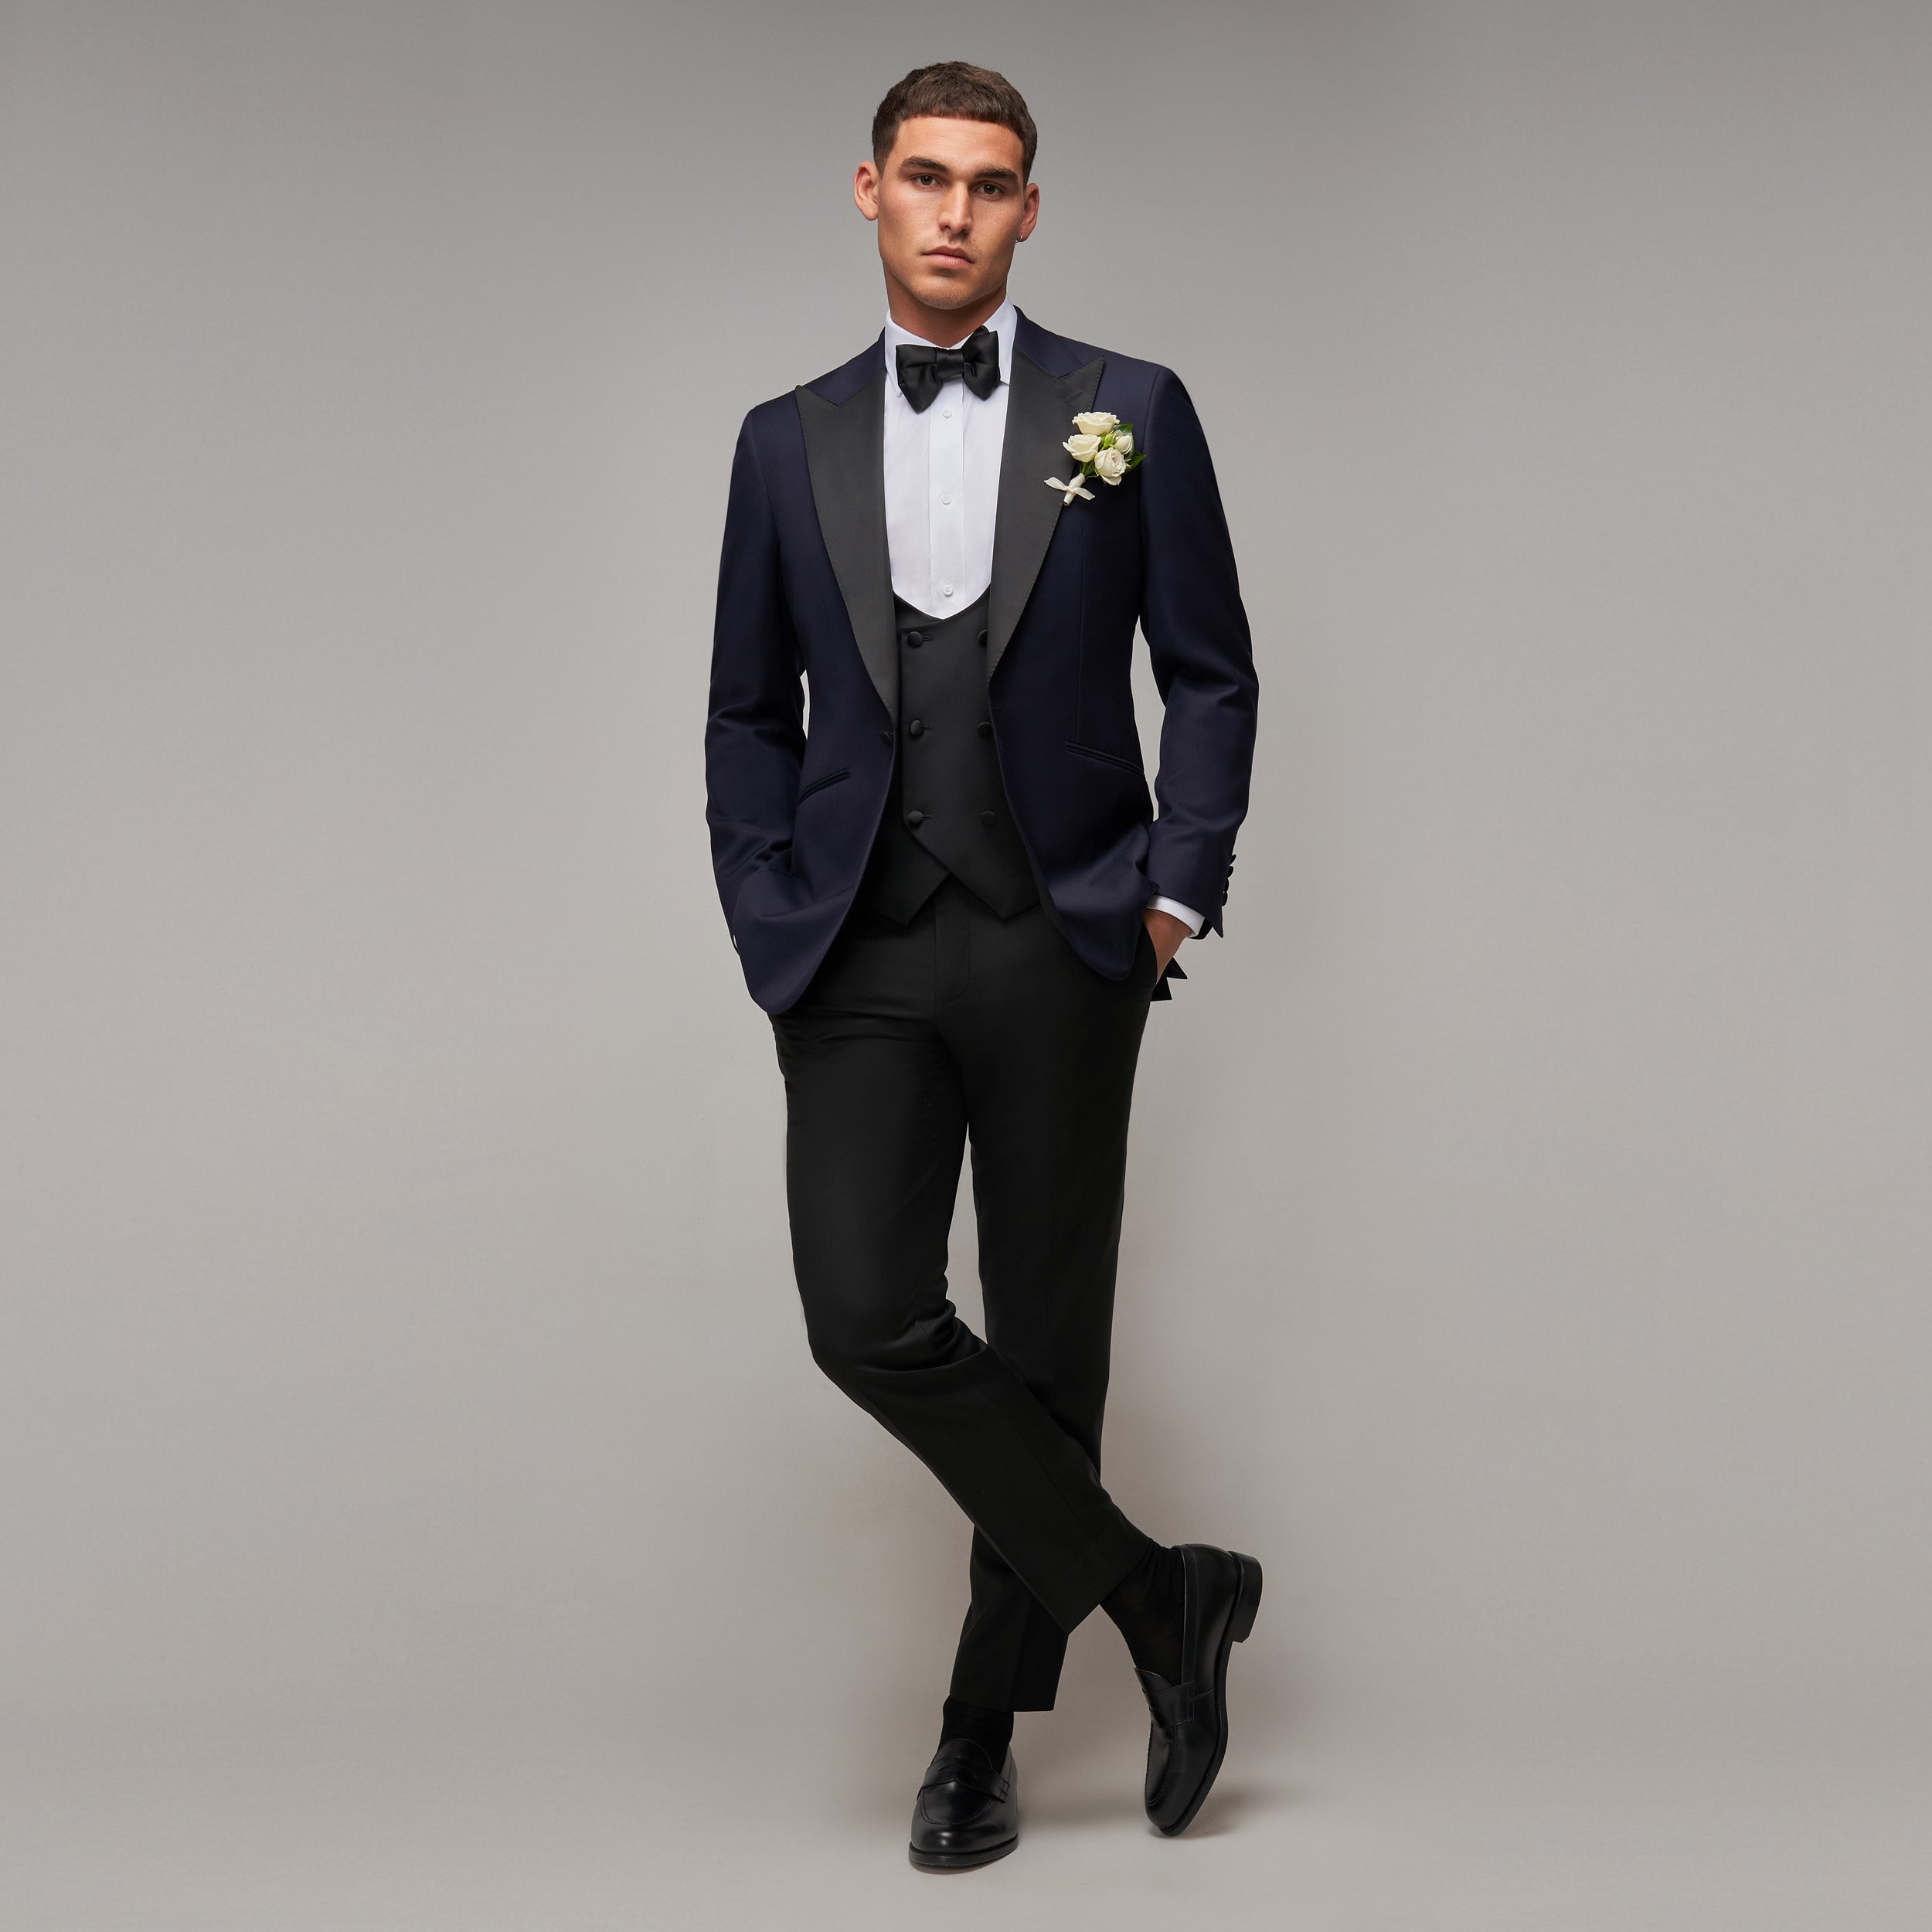 Brent Wilson Navy Blue and Black Wedding Tuxedo Collection